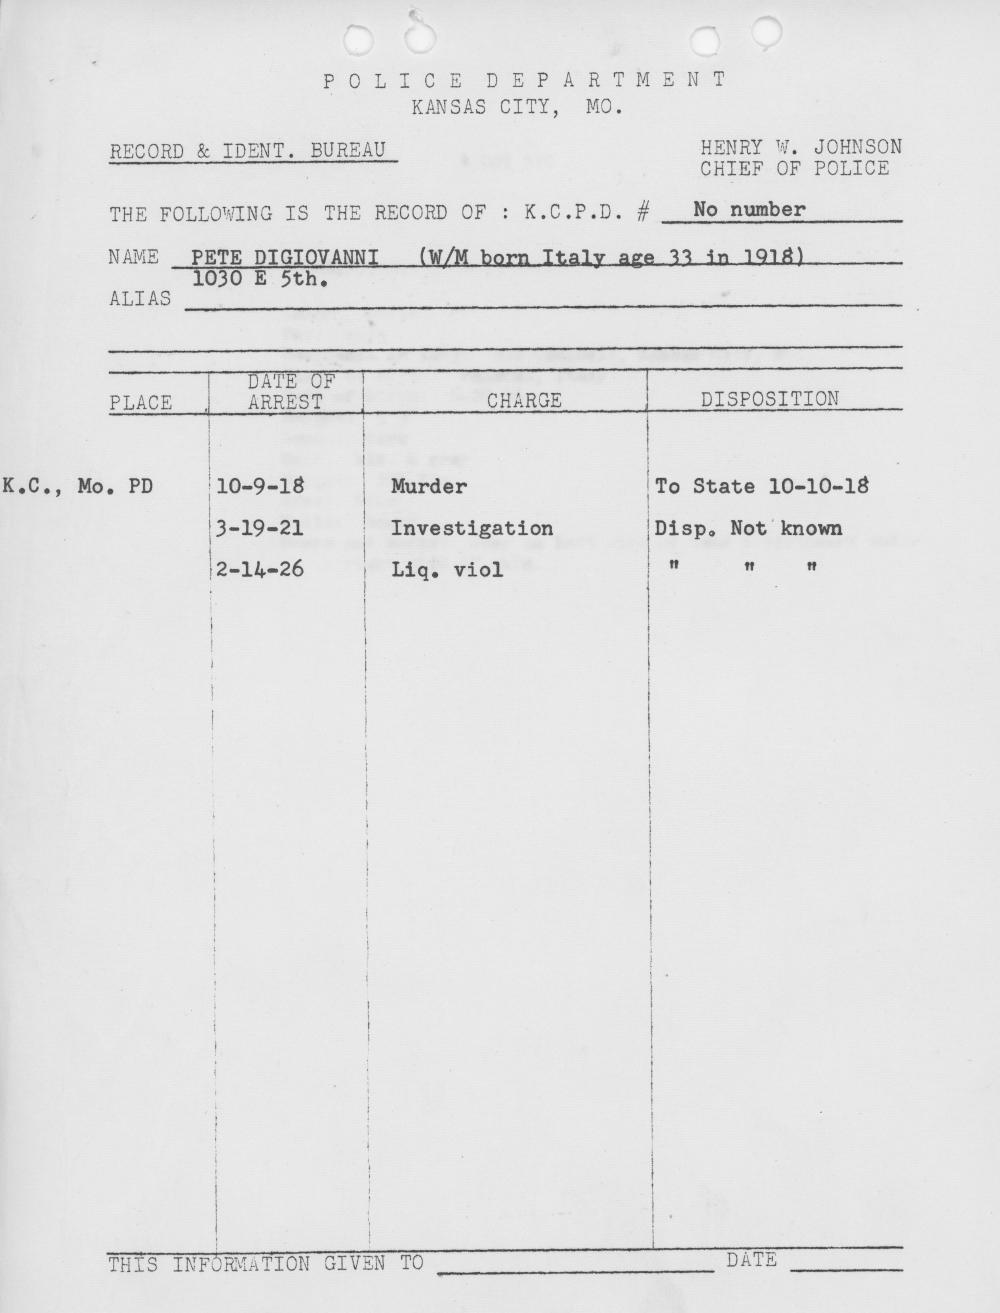 Kansas City Police Department Record for Peter DiGiovanni